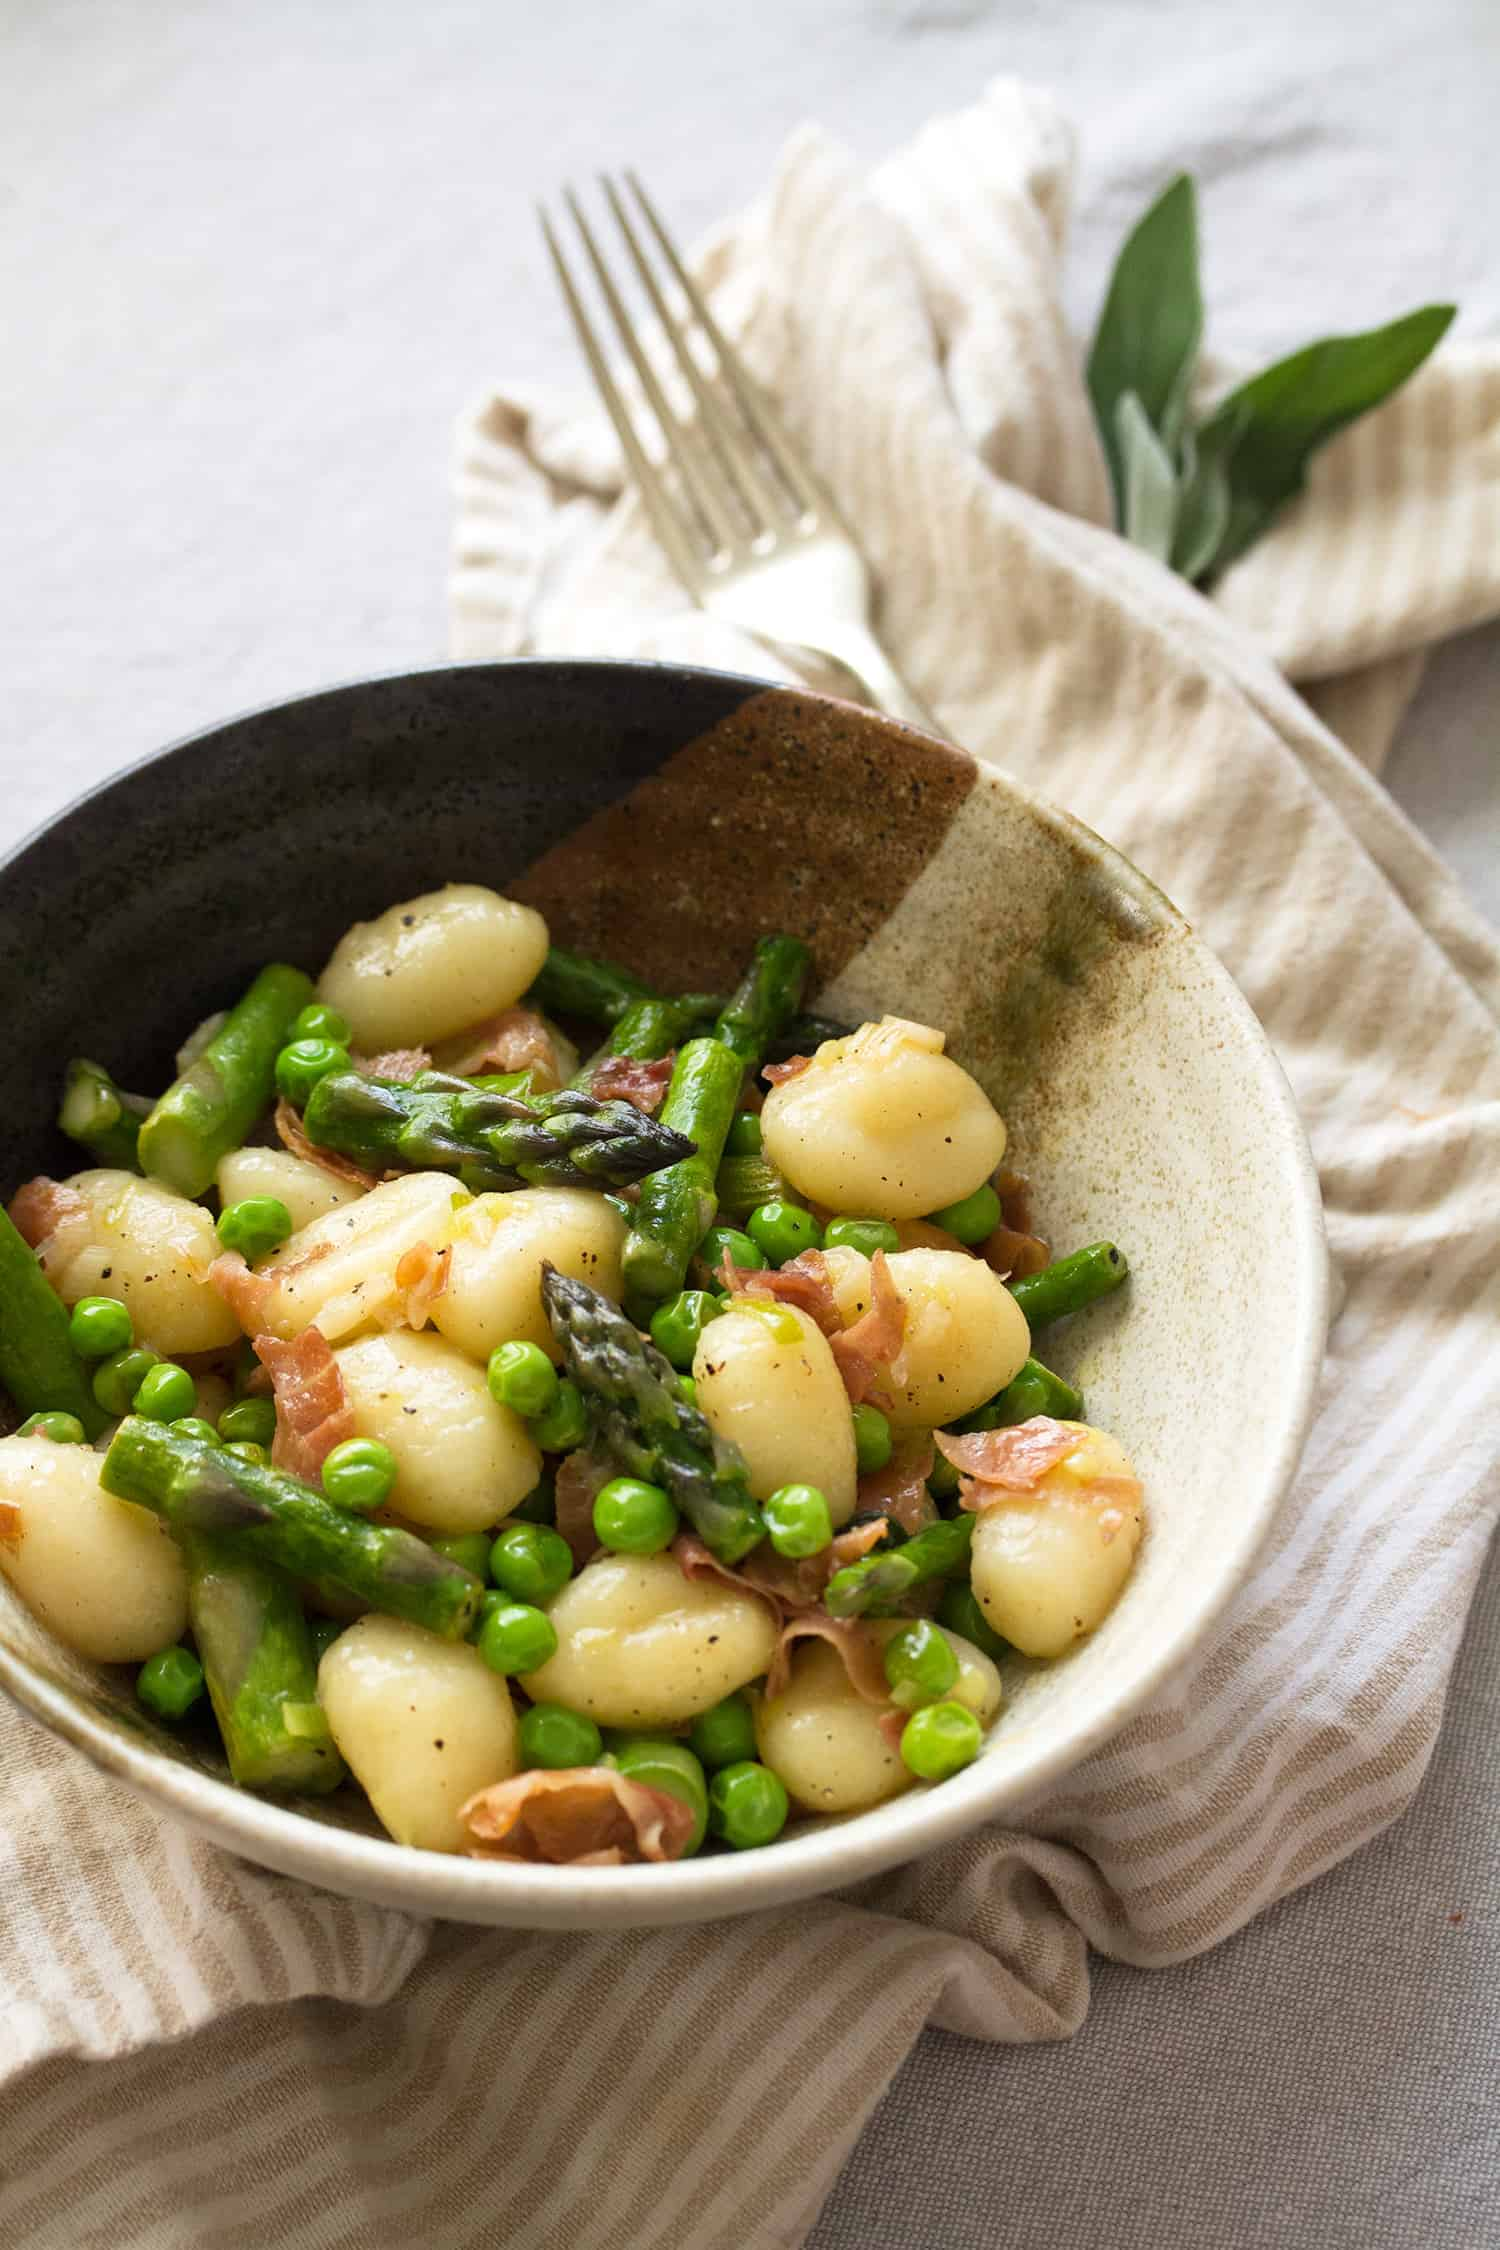 Kick Some Asparagus: Brown Butter Gnocchi with Asparagus and Peas